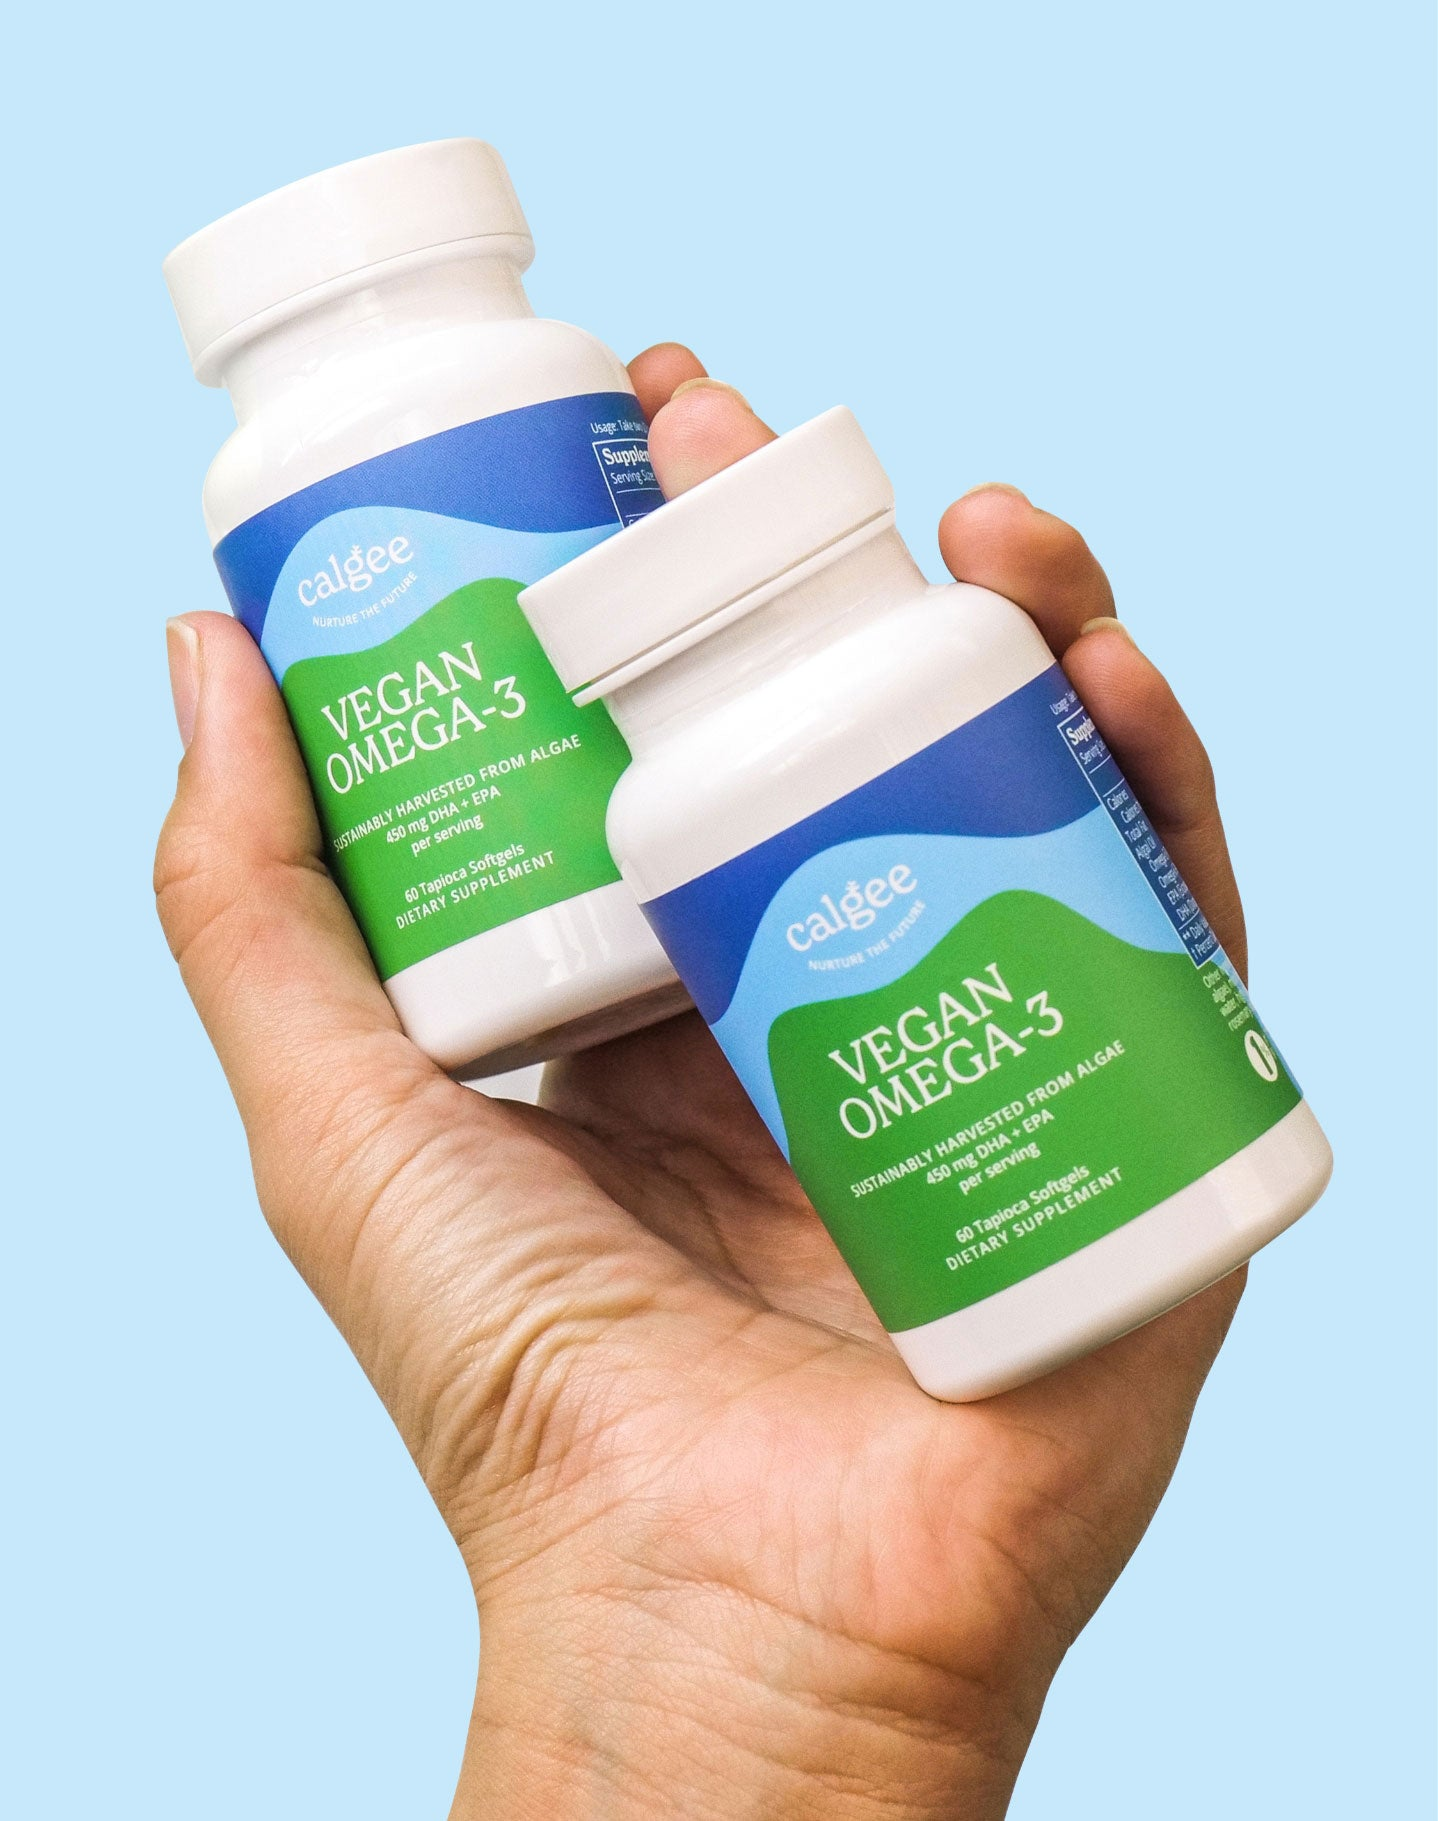 Vegan Omega 3 Supplement Bottle